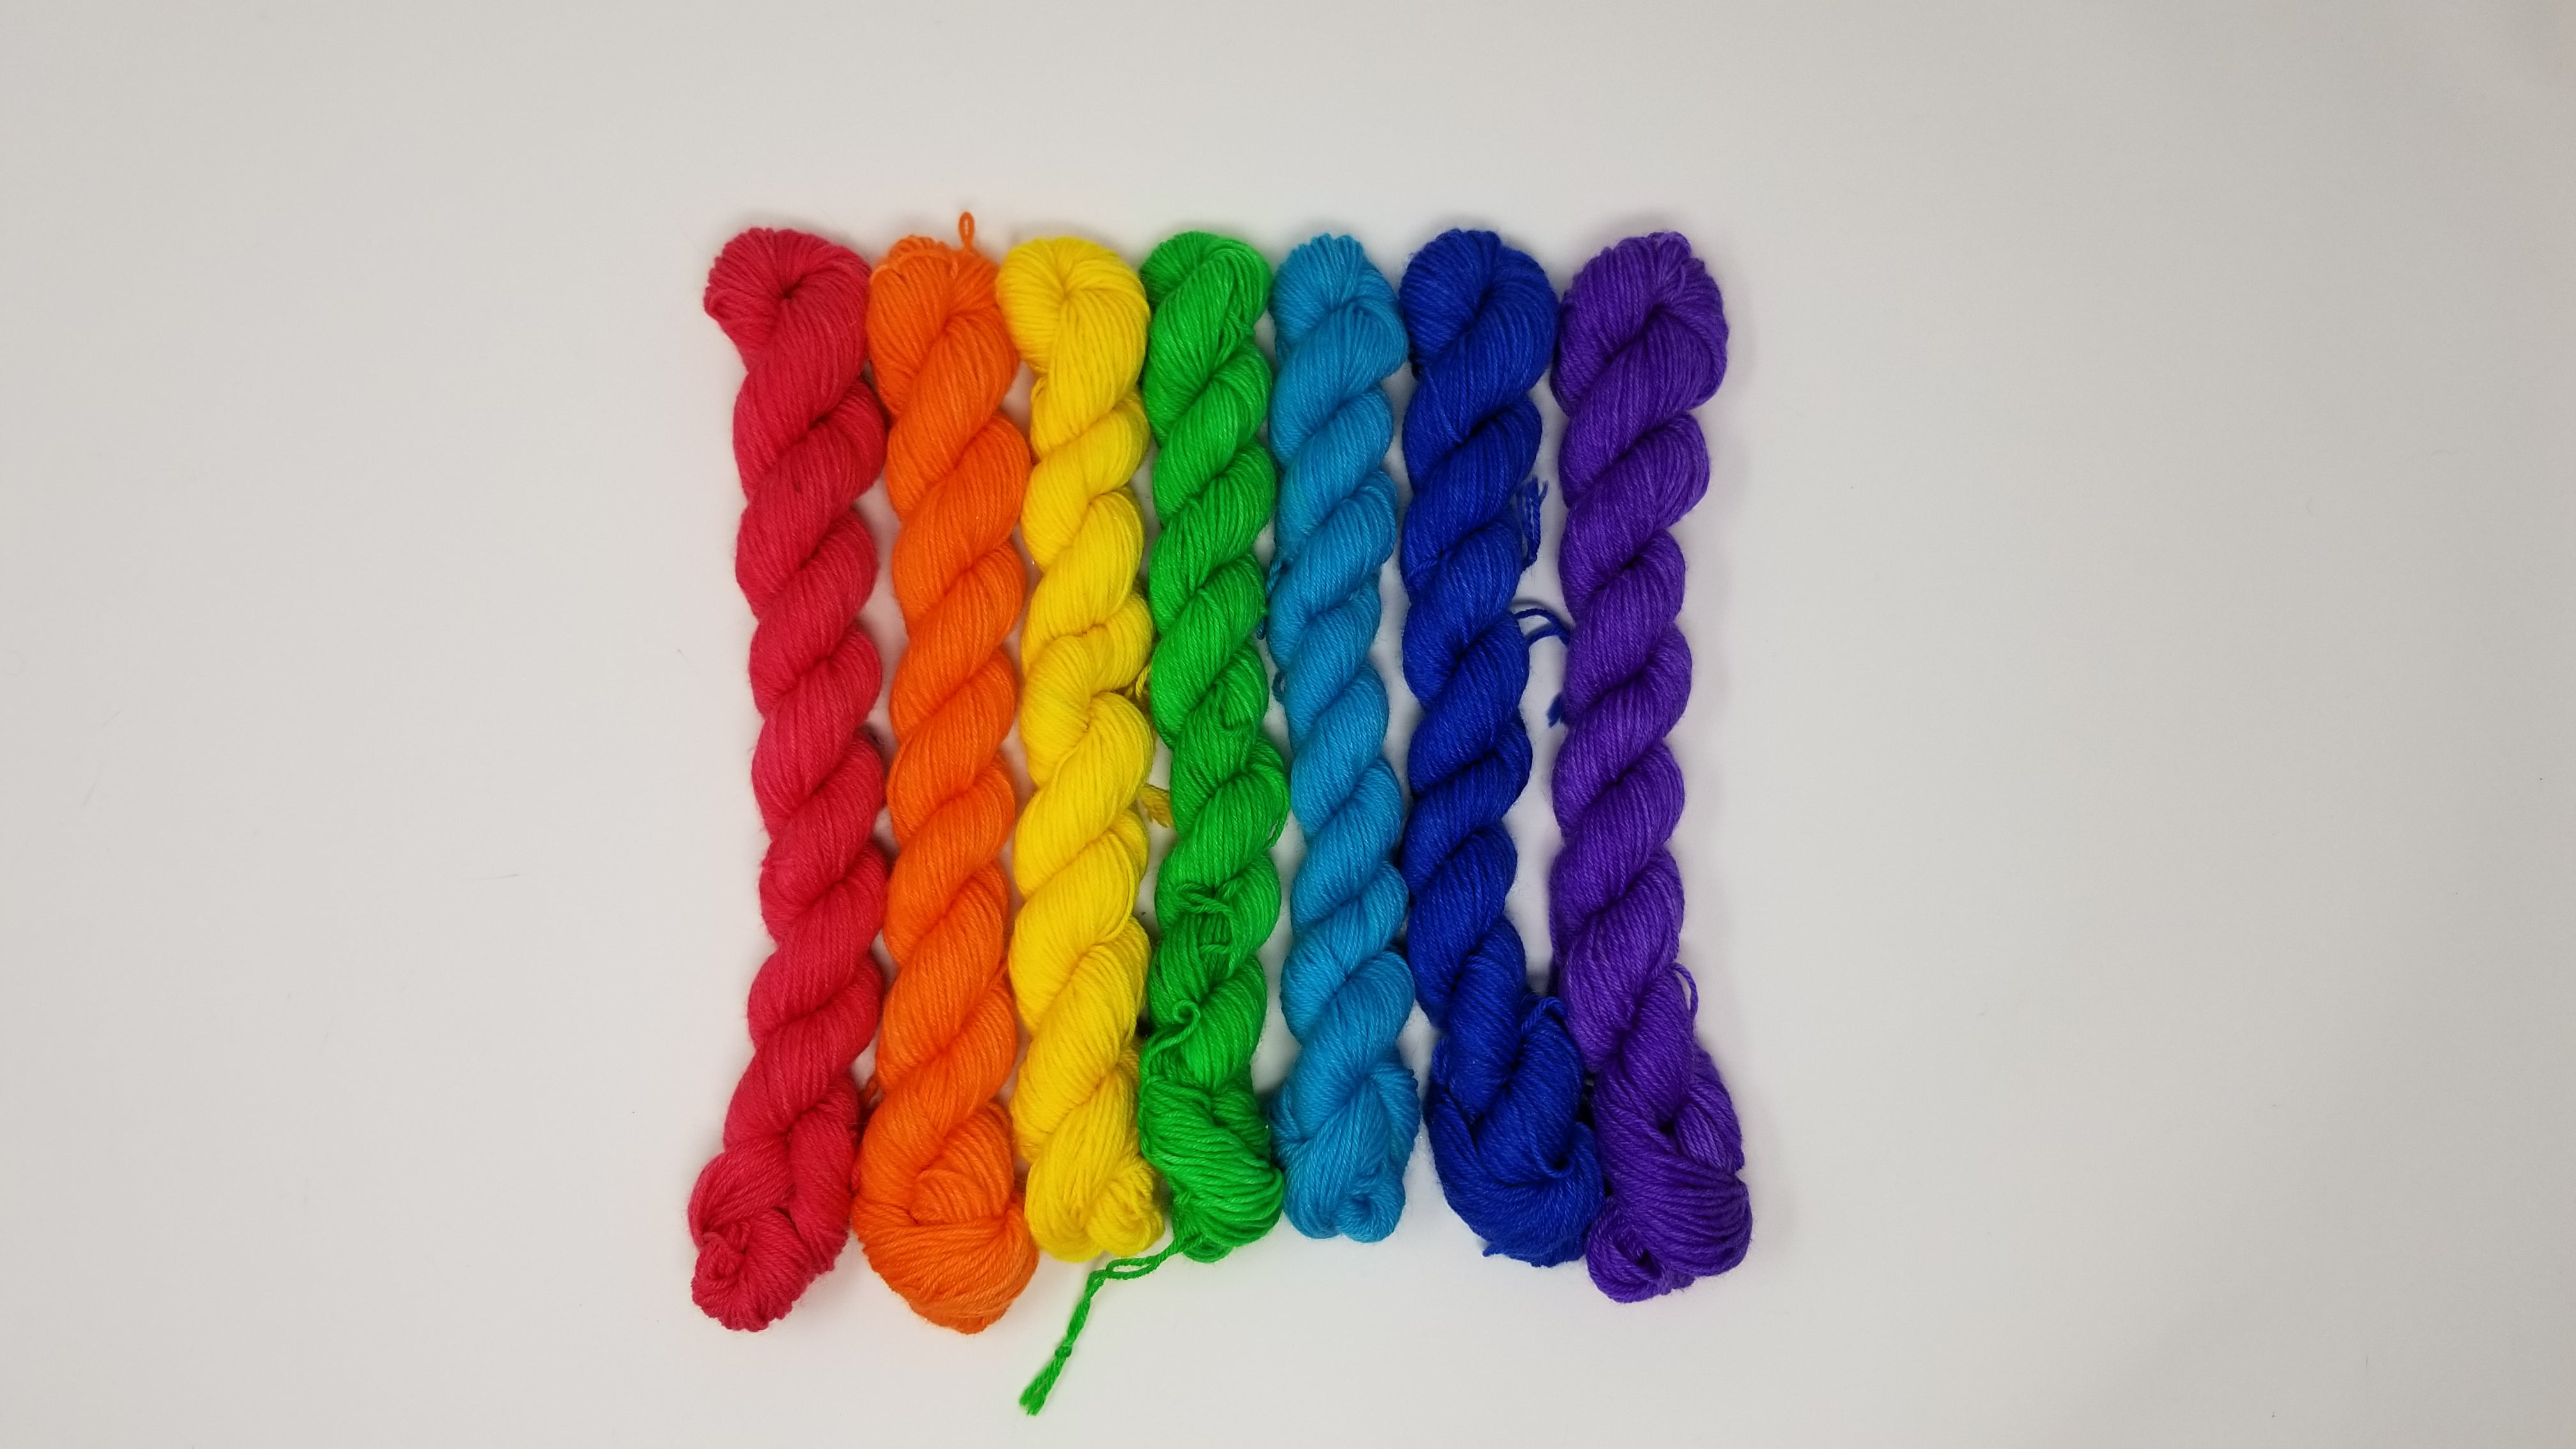 f90ca4b0451 ... Rainbow ROYGBIV mini set of 7 solid colored skeins - Hand dyed yarn -  SW Merino ...